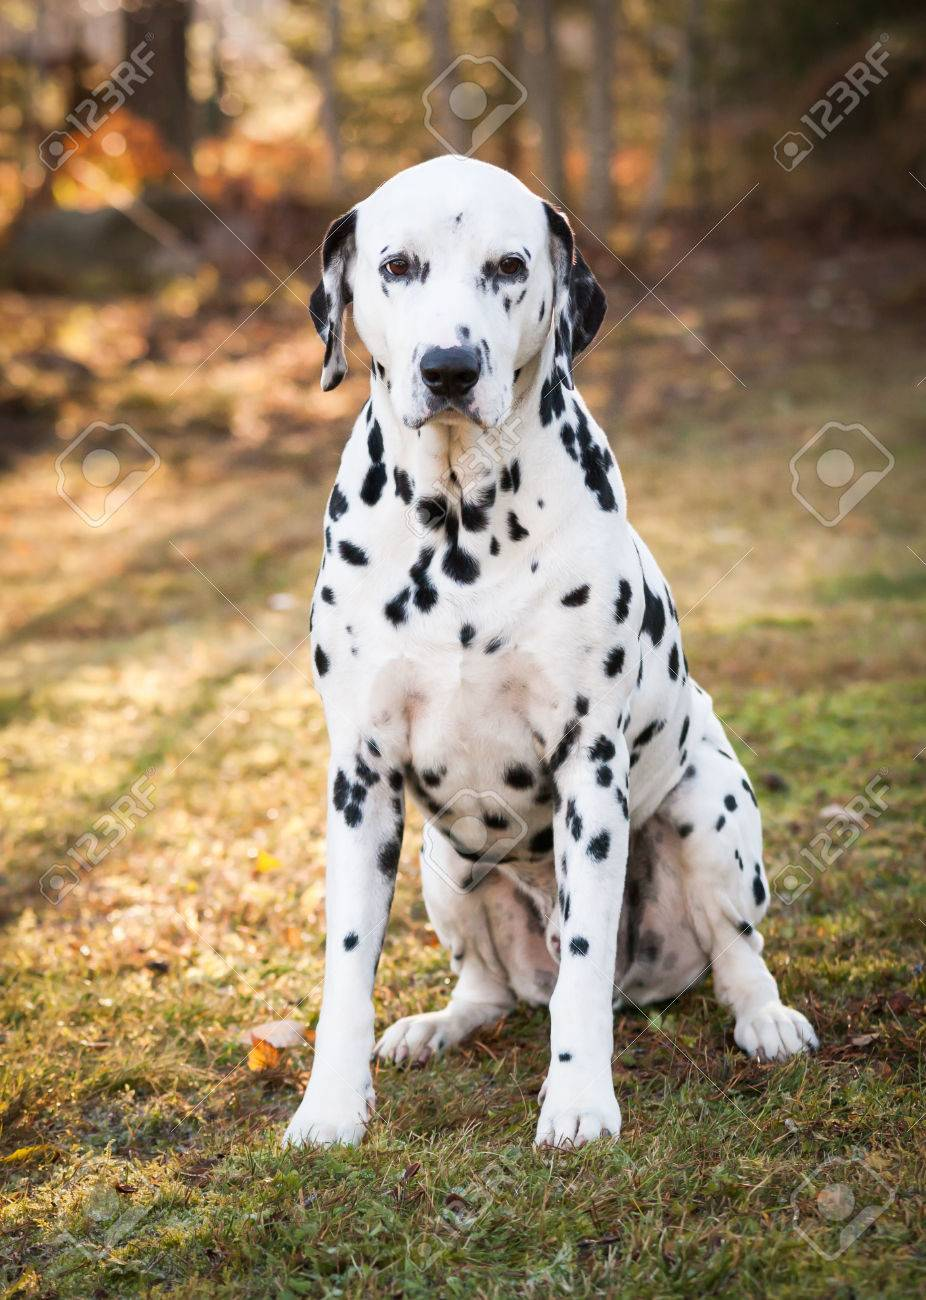 Dalmatian dog sitting on the grass on a sunny autumn day Stock Photo - 24683030